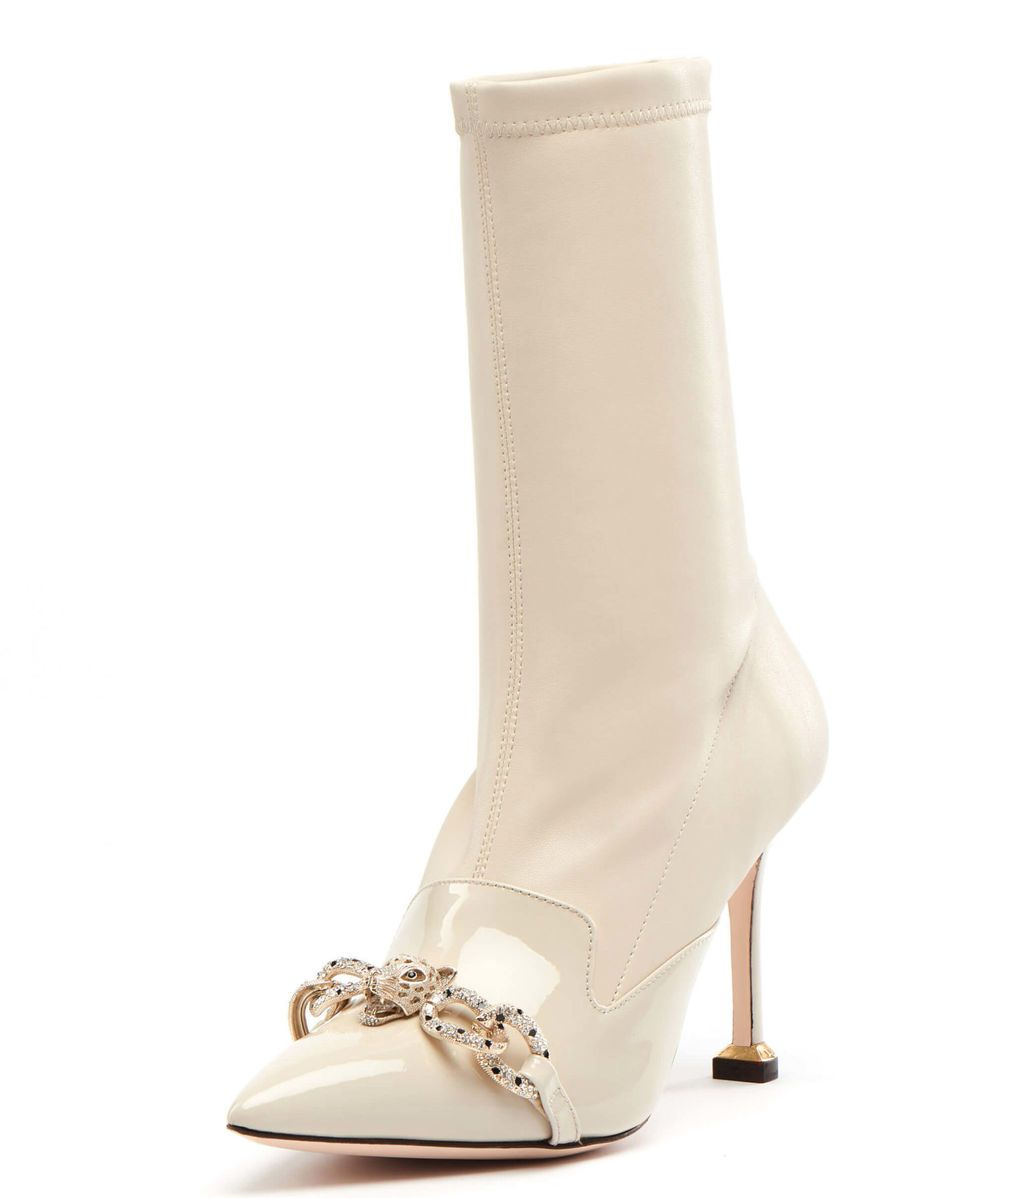 Luis-Onofre-Portuguese-Shoes-FW20-Galore-4645-Rogers-2-scaled